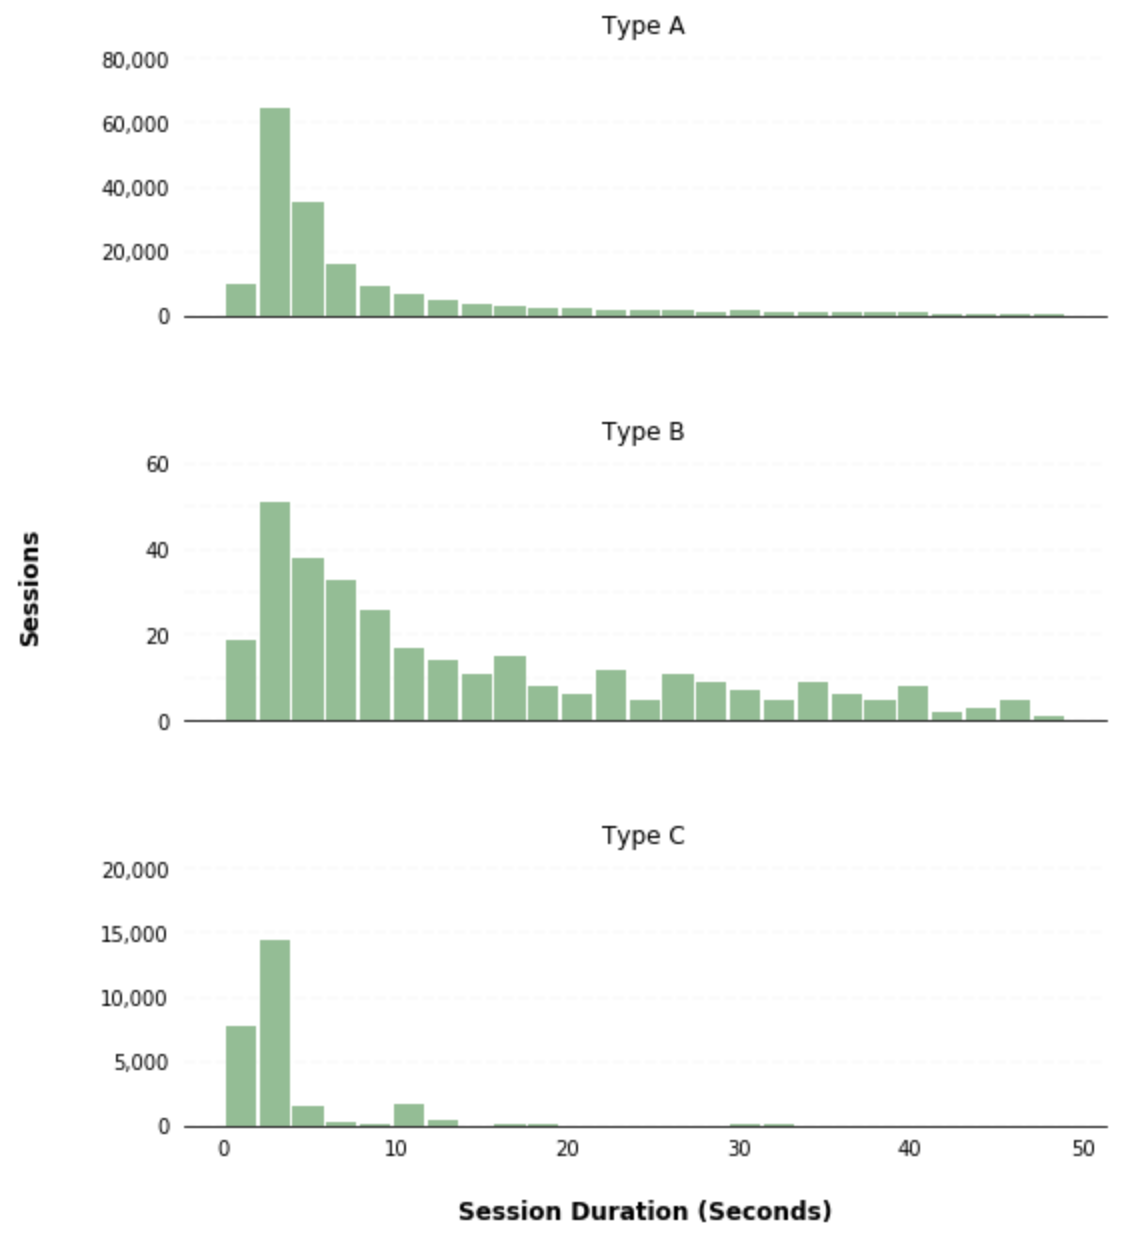 Pandas Histogram Grouped